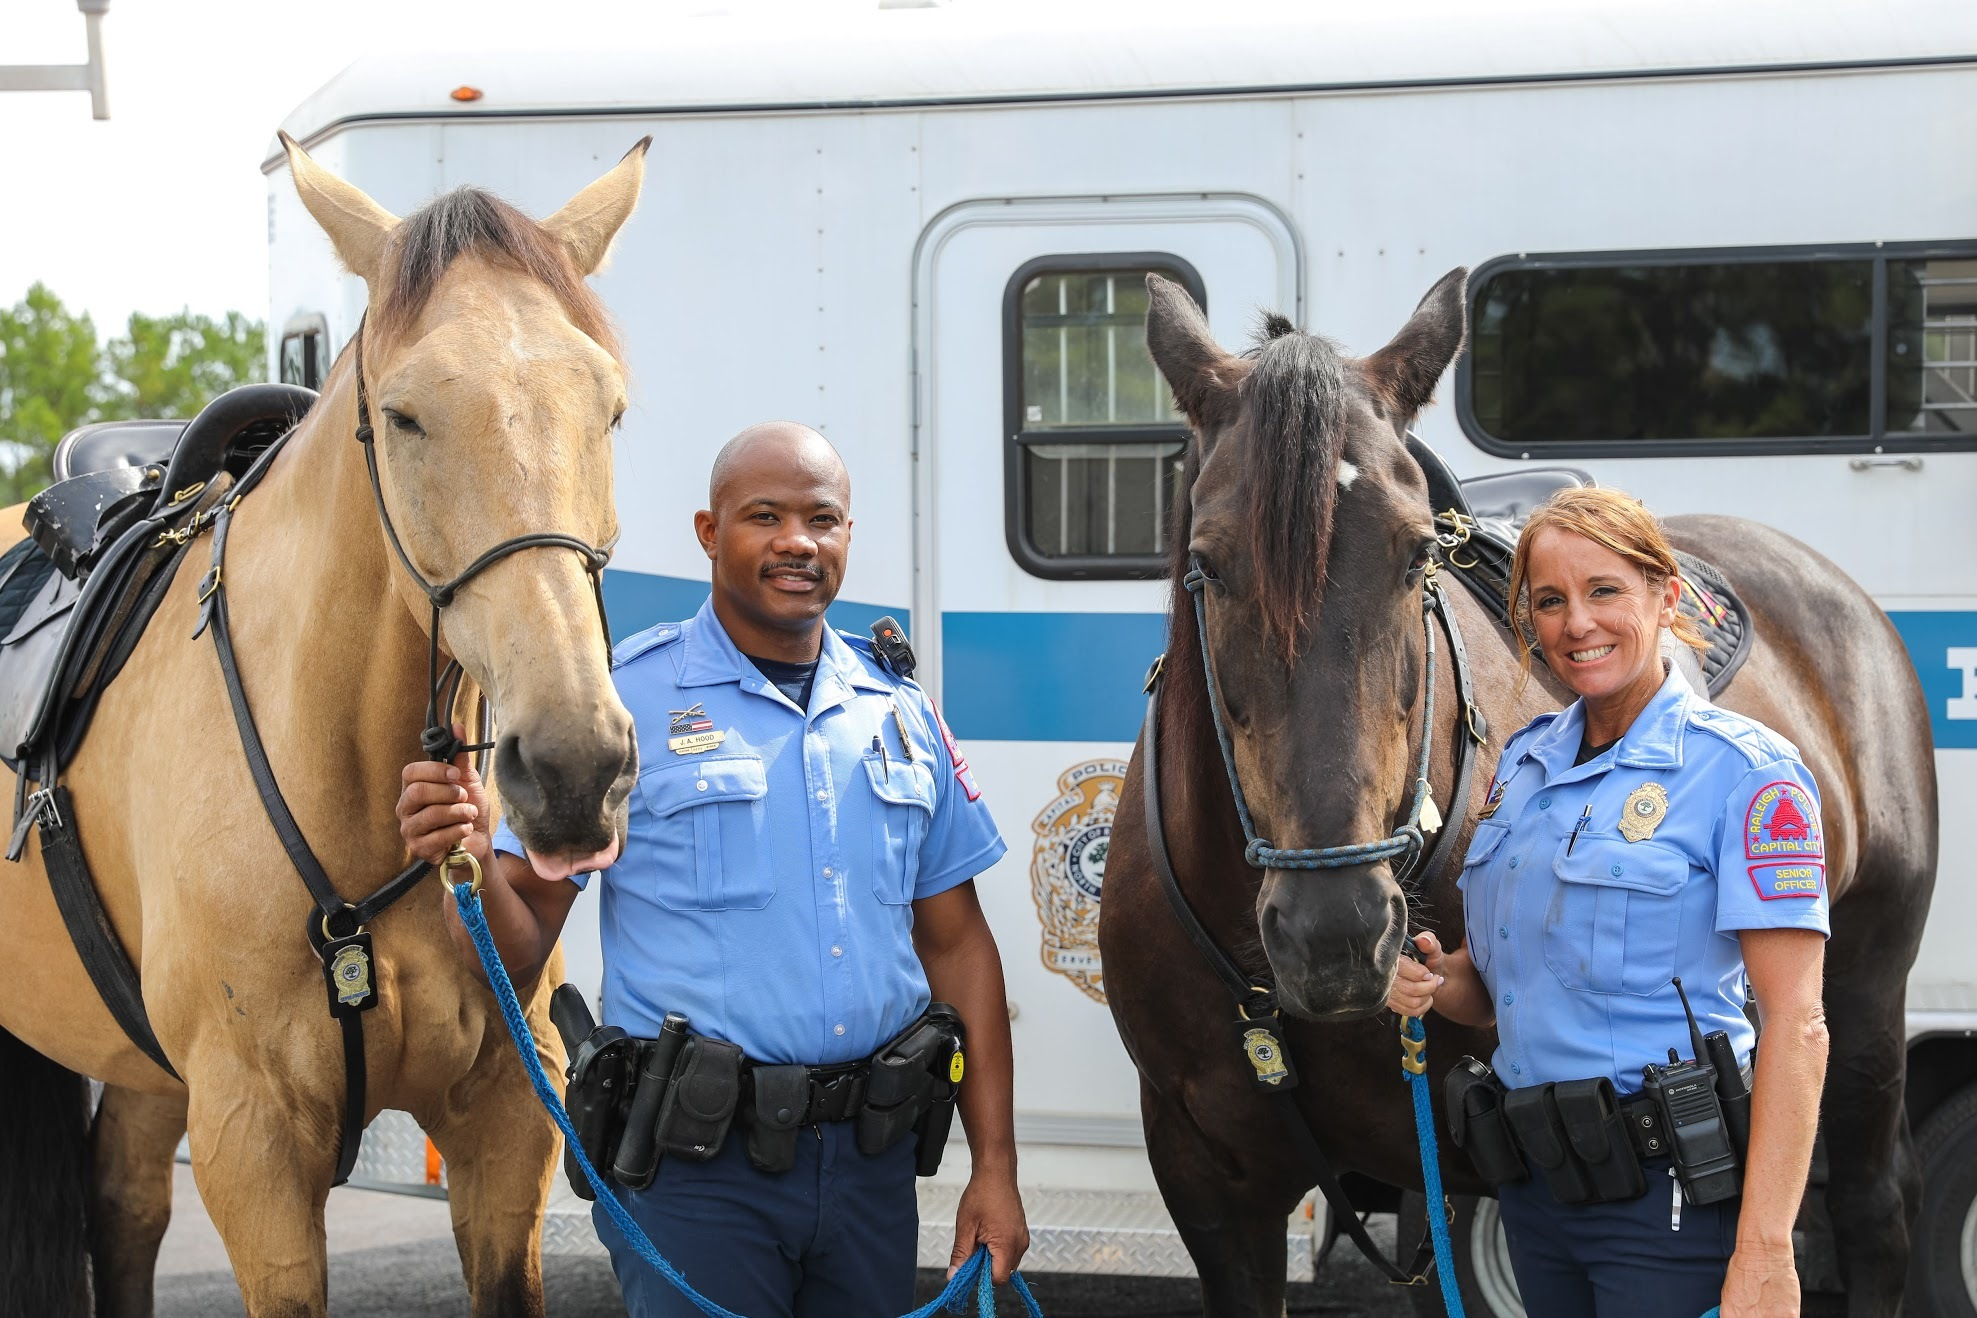 Horses and officers